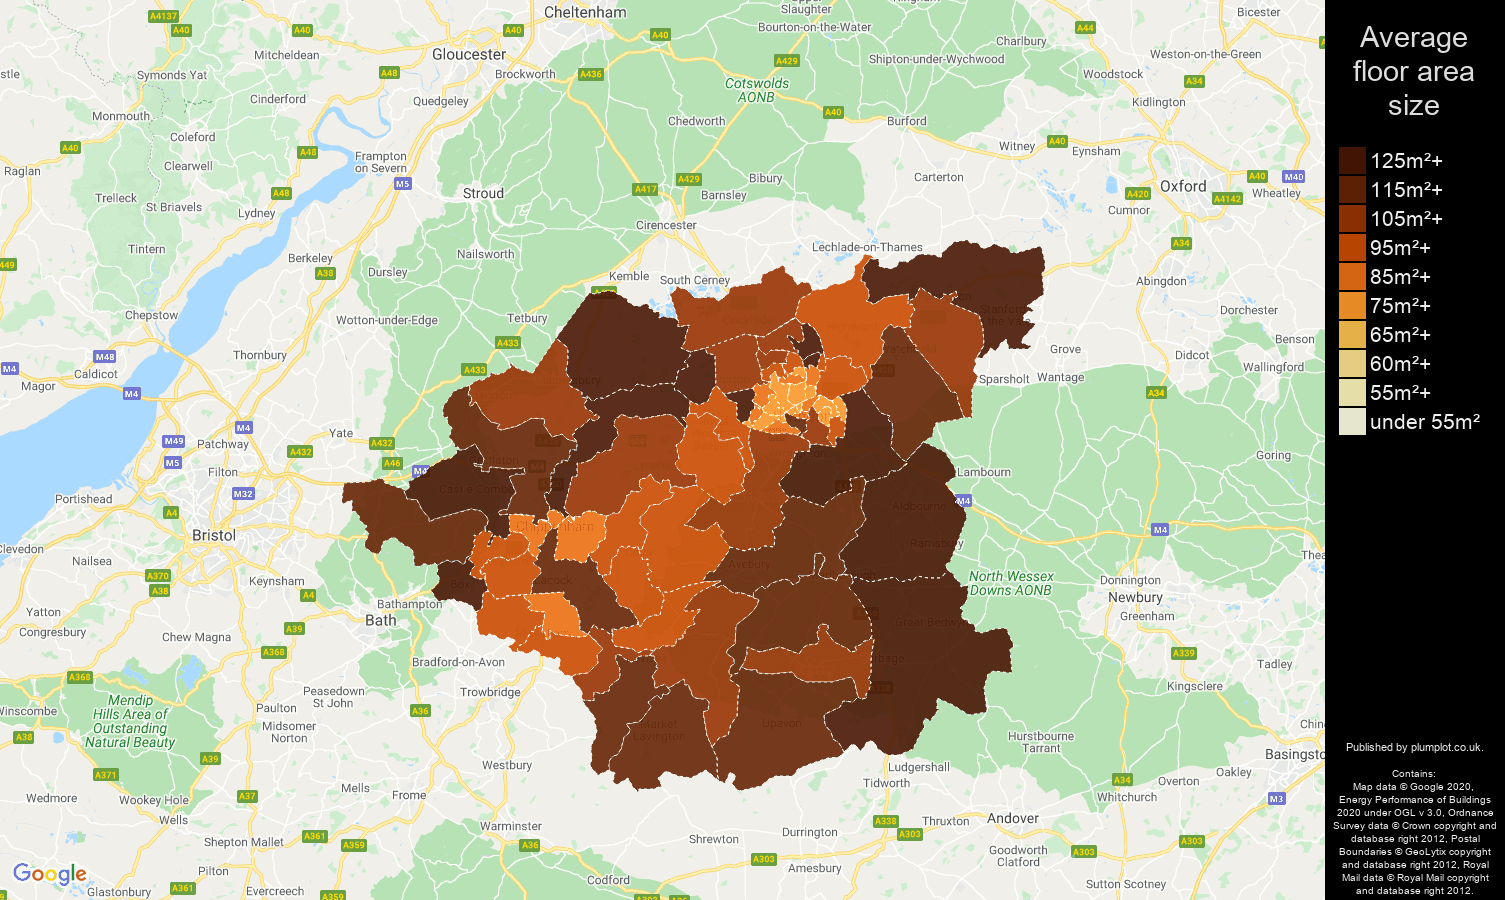 Swindon map of average floor area size of houses